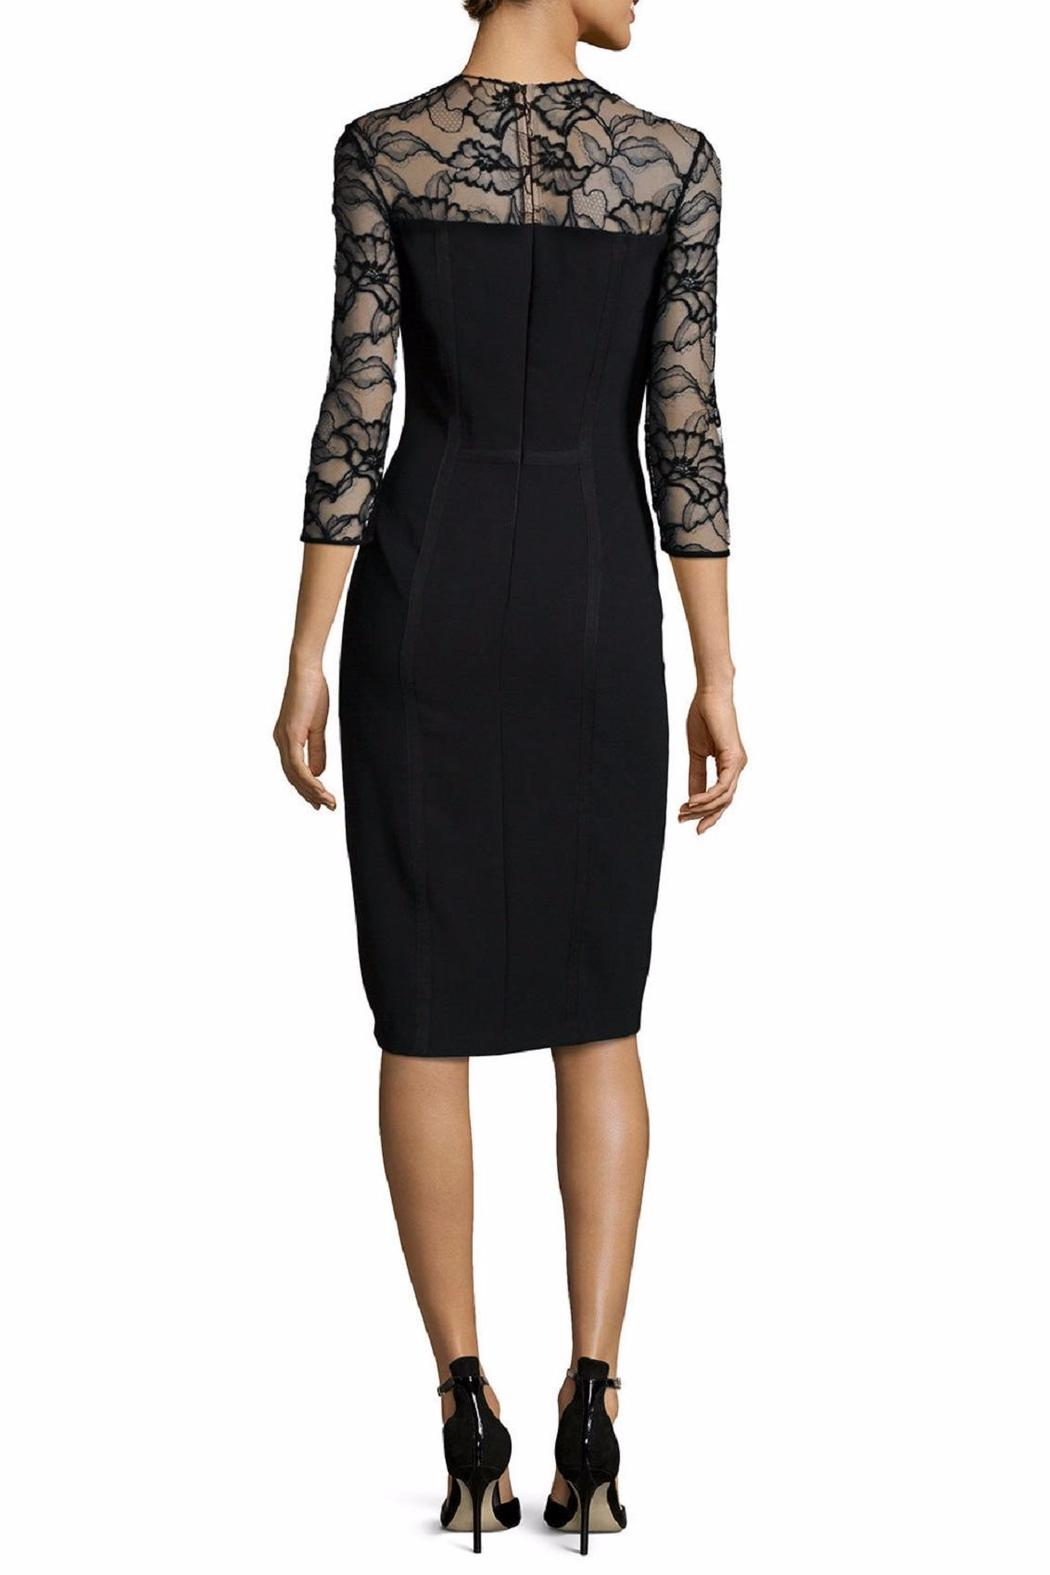 Carmen Marc Valvo Lace Trim Dress - Front Full Image